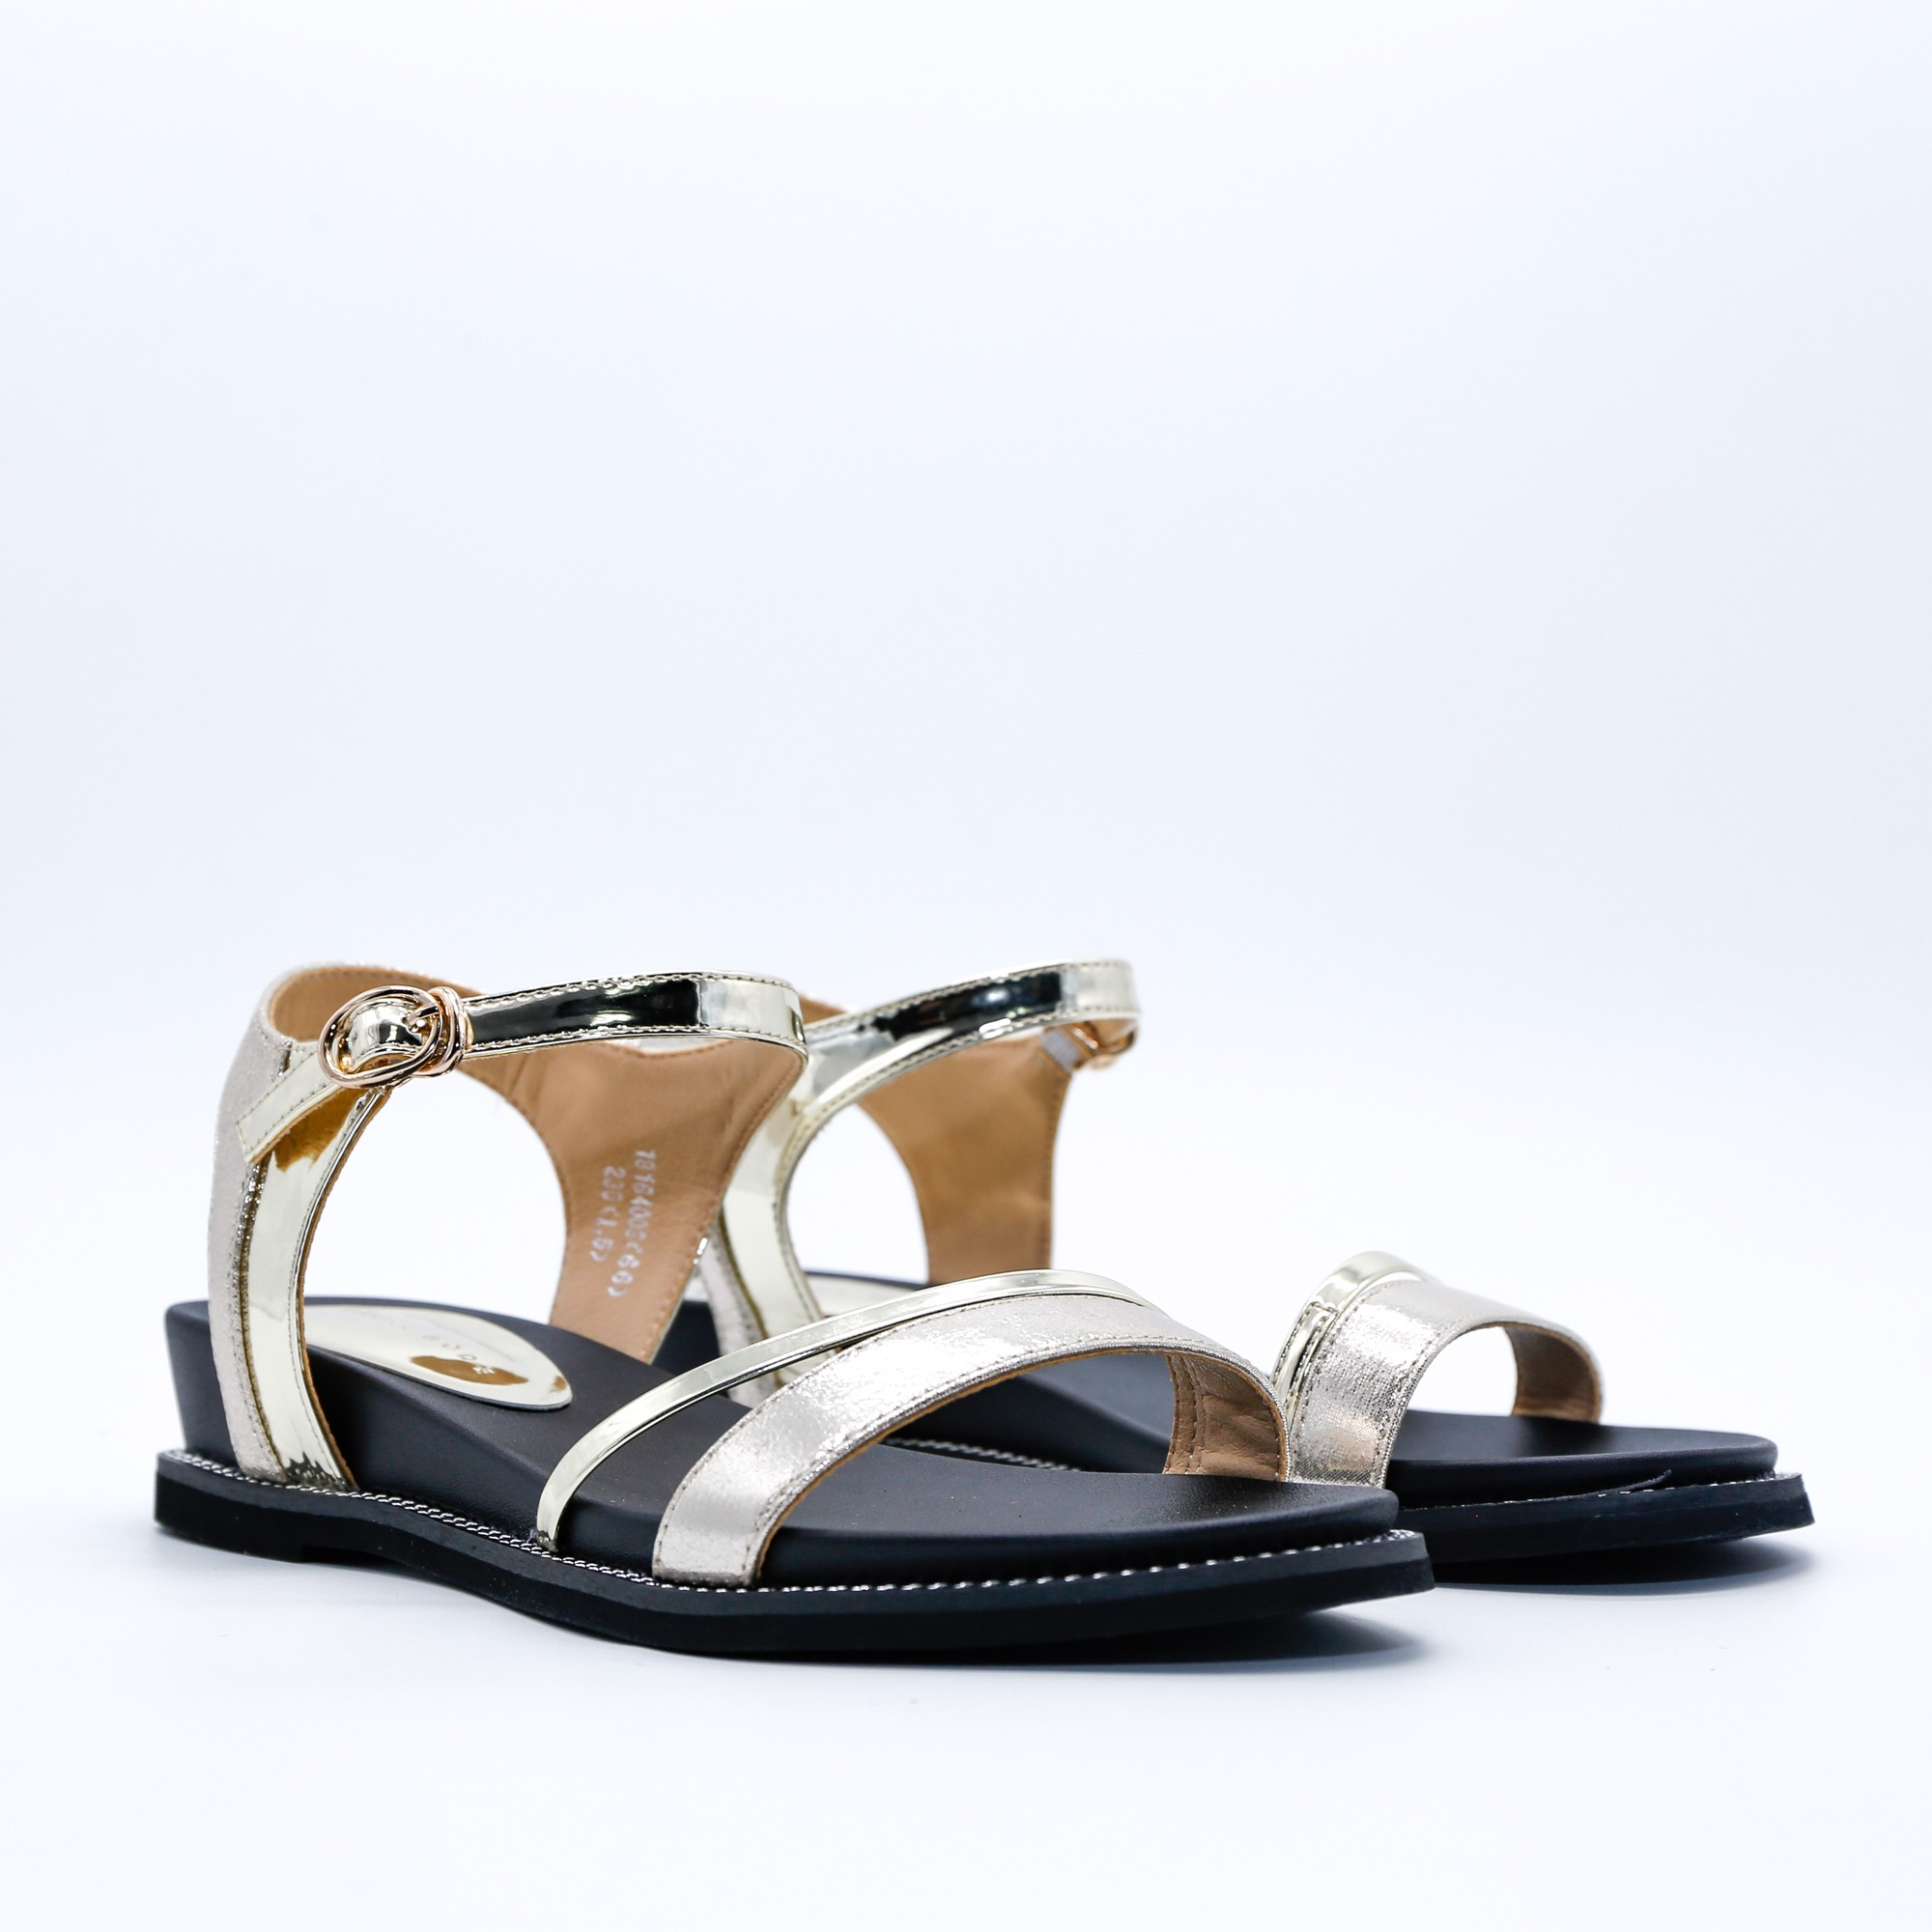 Sandals nữ Exull Mode 1816400304